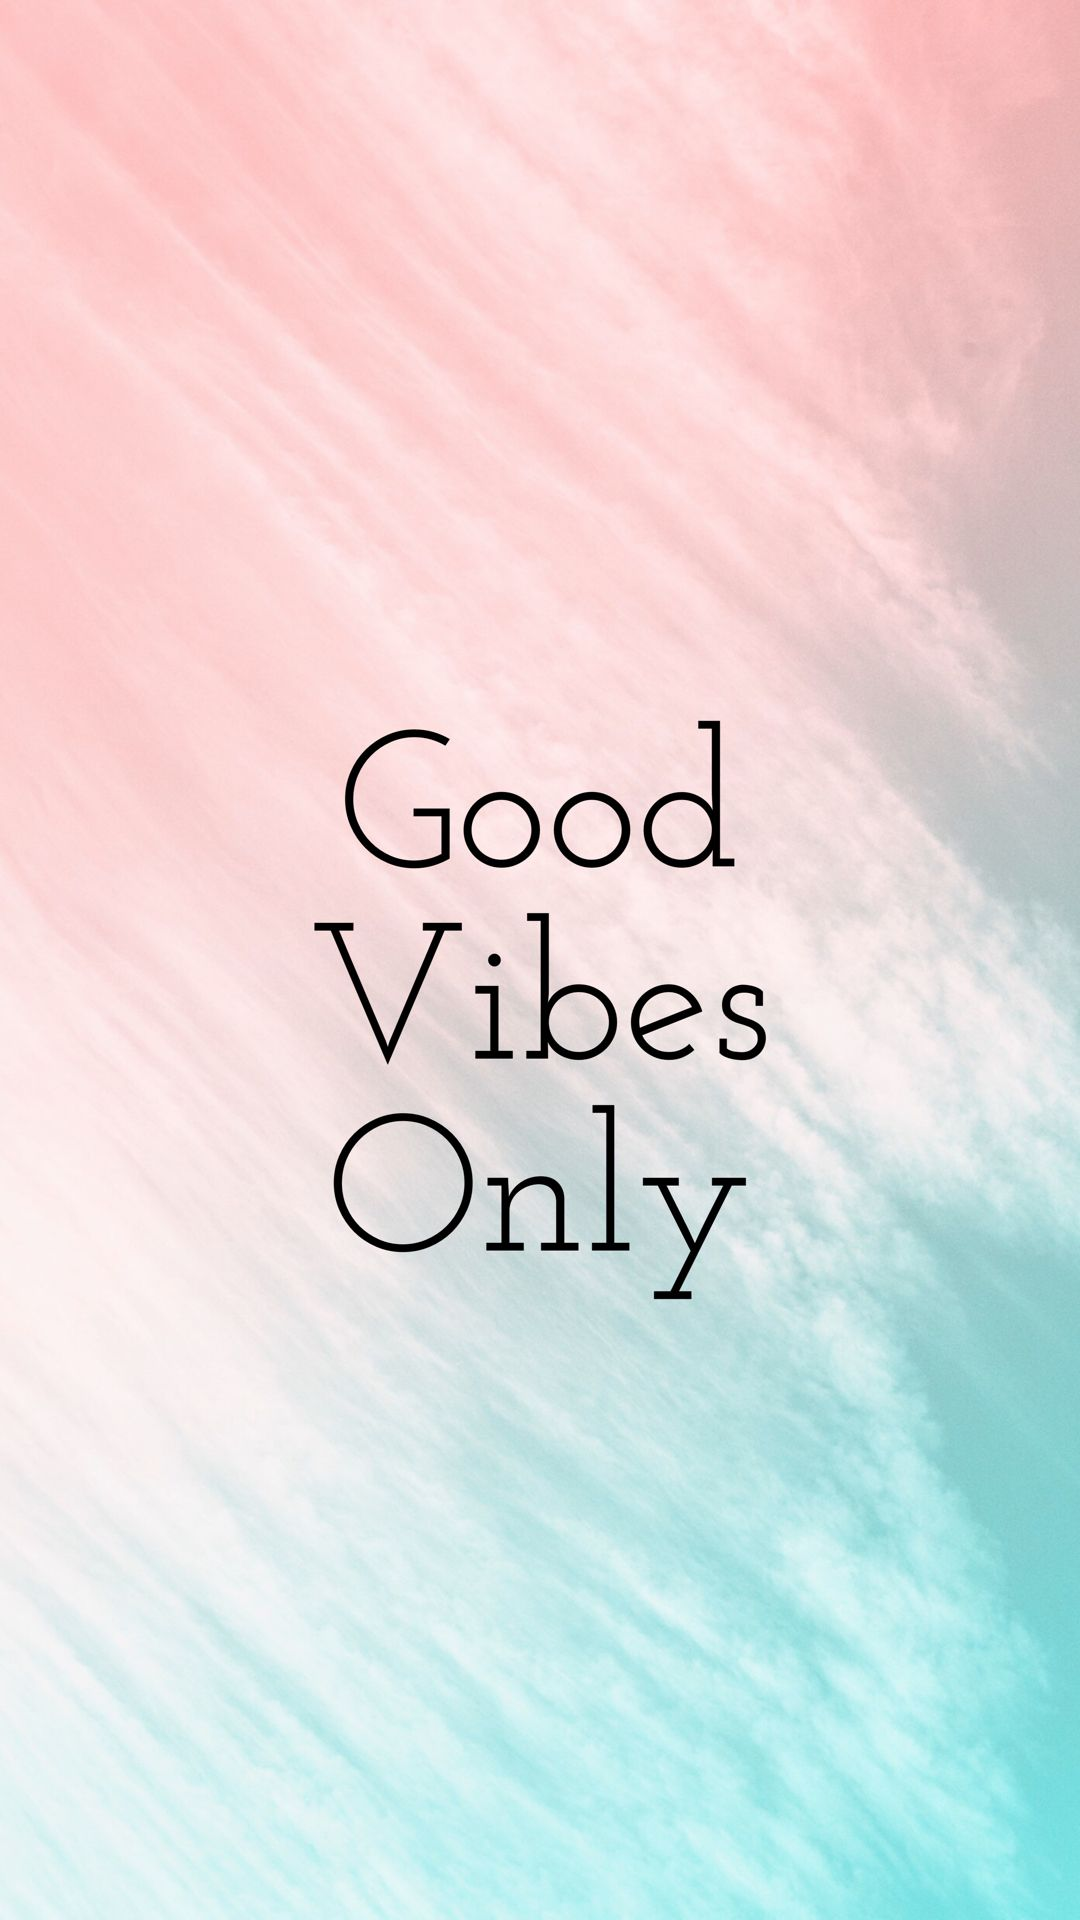 Good Vibes Only Screen Savers Wallpapers Good Vibes Wallpaper Wallpaper Tumblr Lockscreen